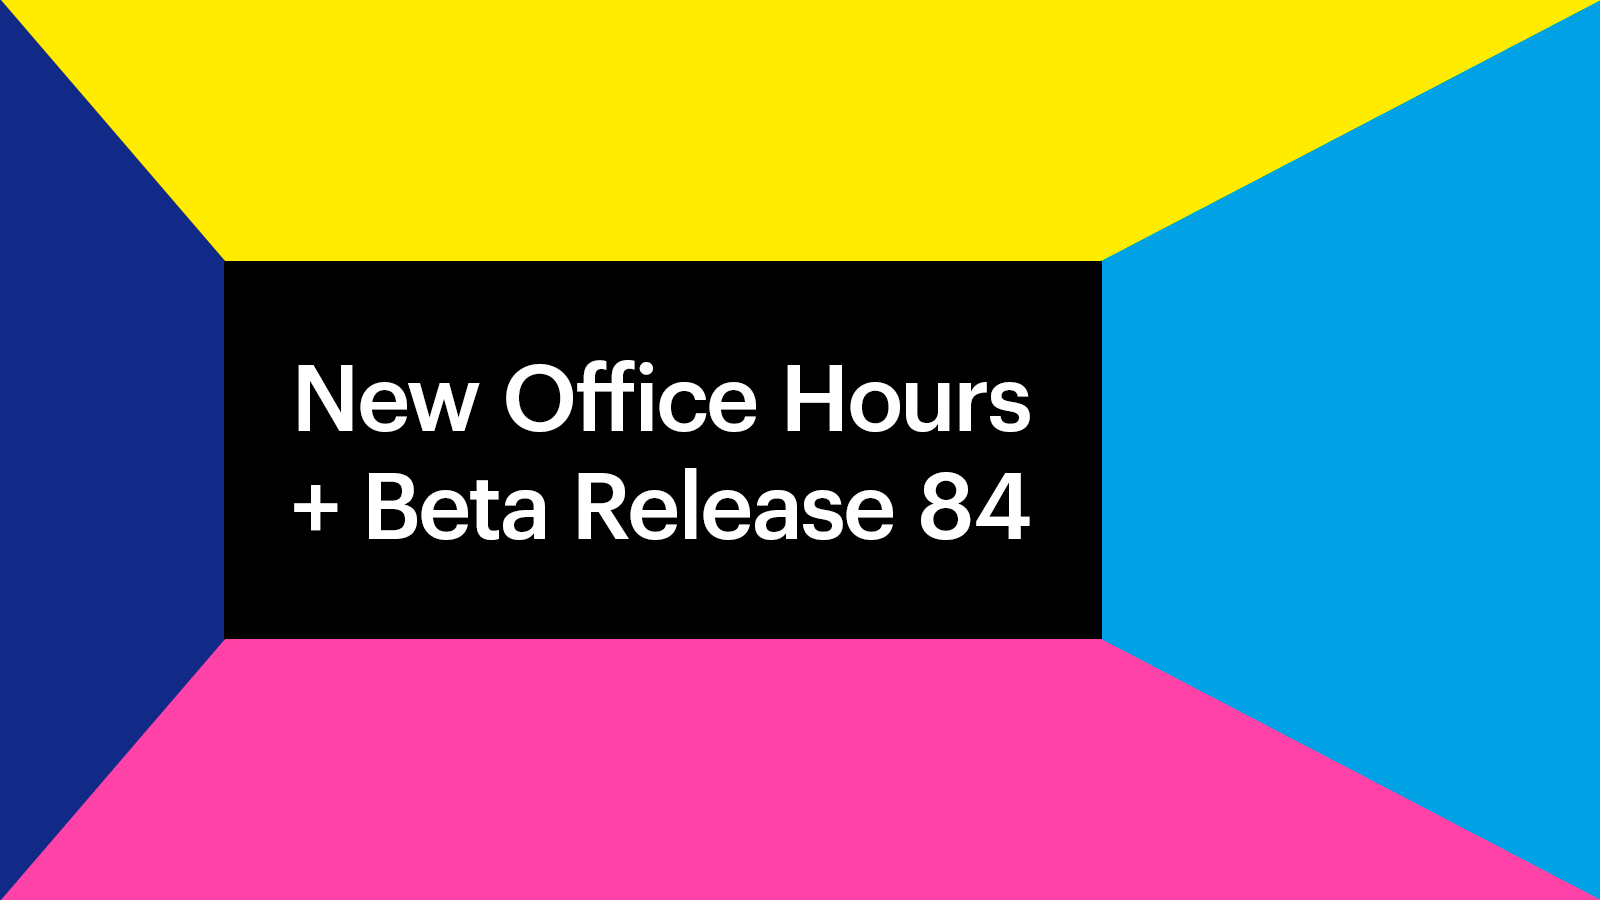 Beta Release 84 Coming Soon and New Office Hours